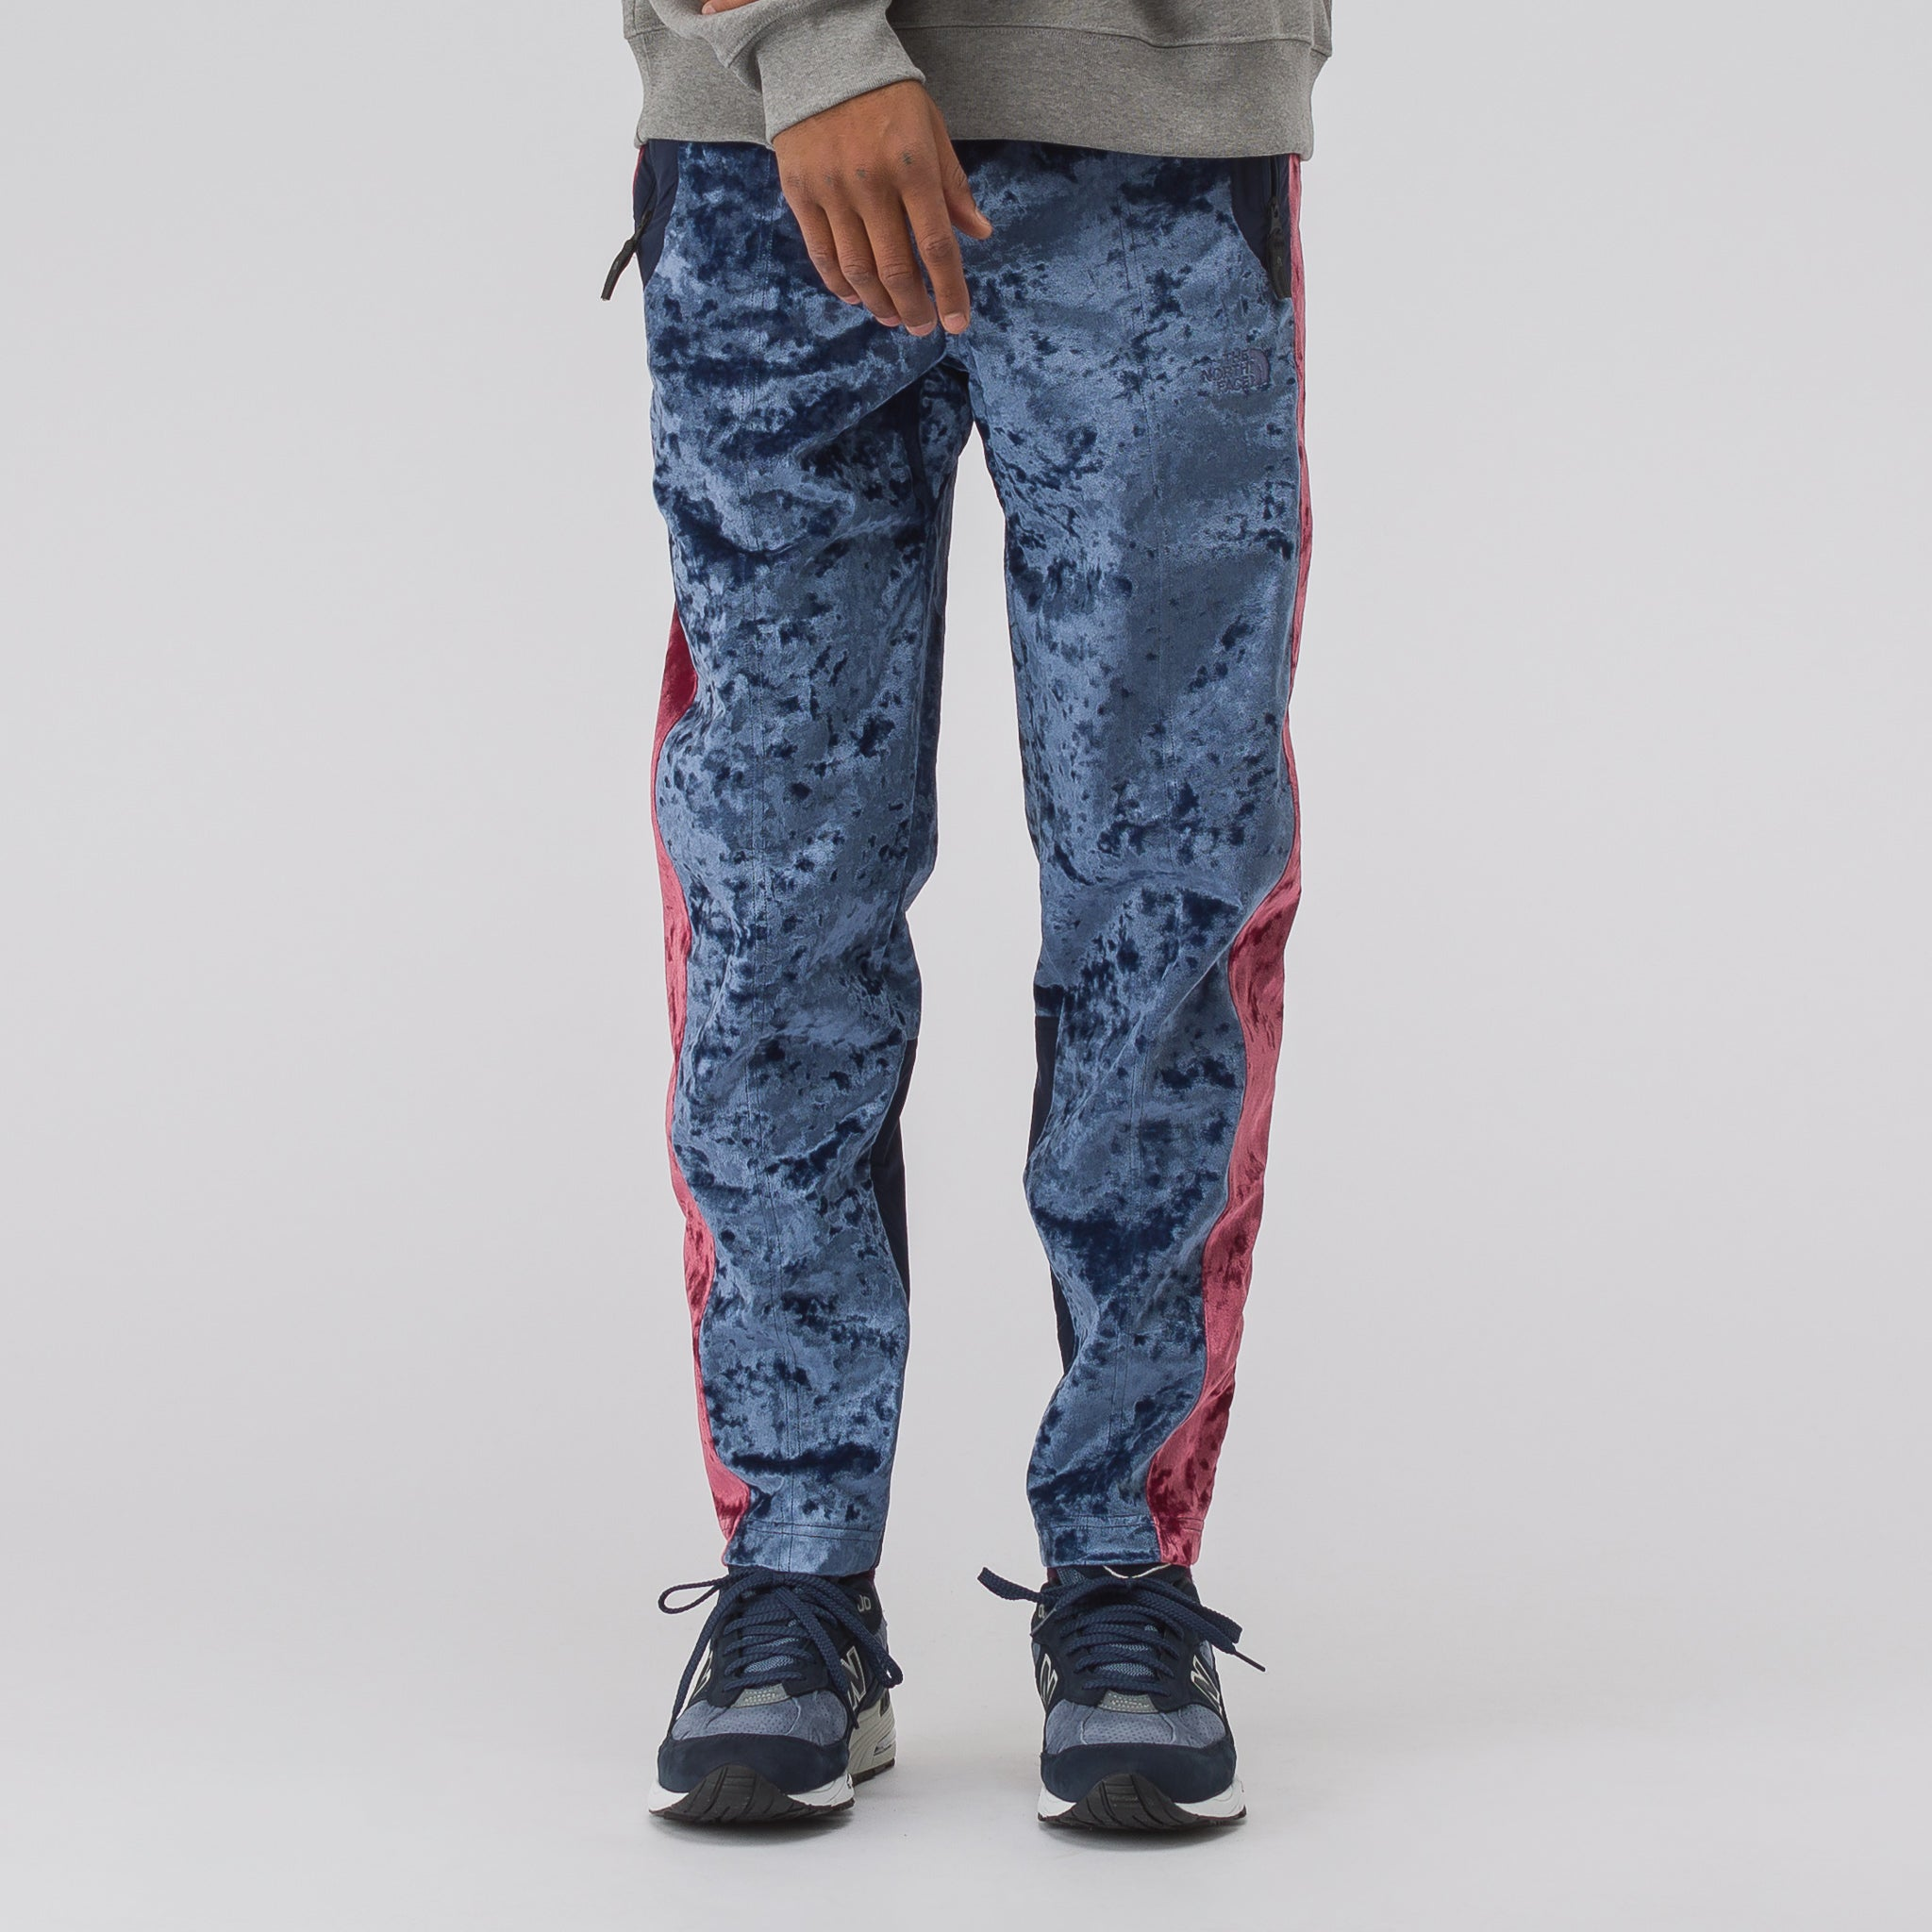 ae03d7a3abaa The North Face Black Label City Velvet Track Pant in Cosmic Blue